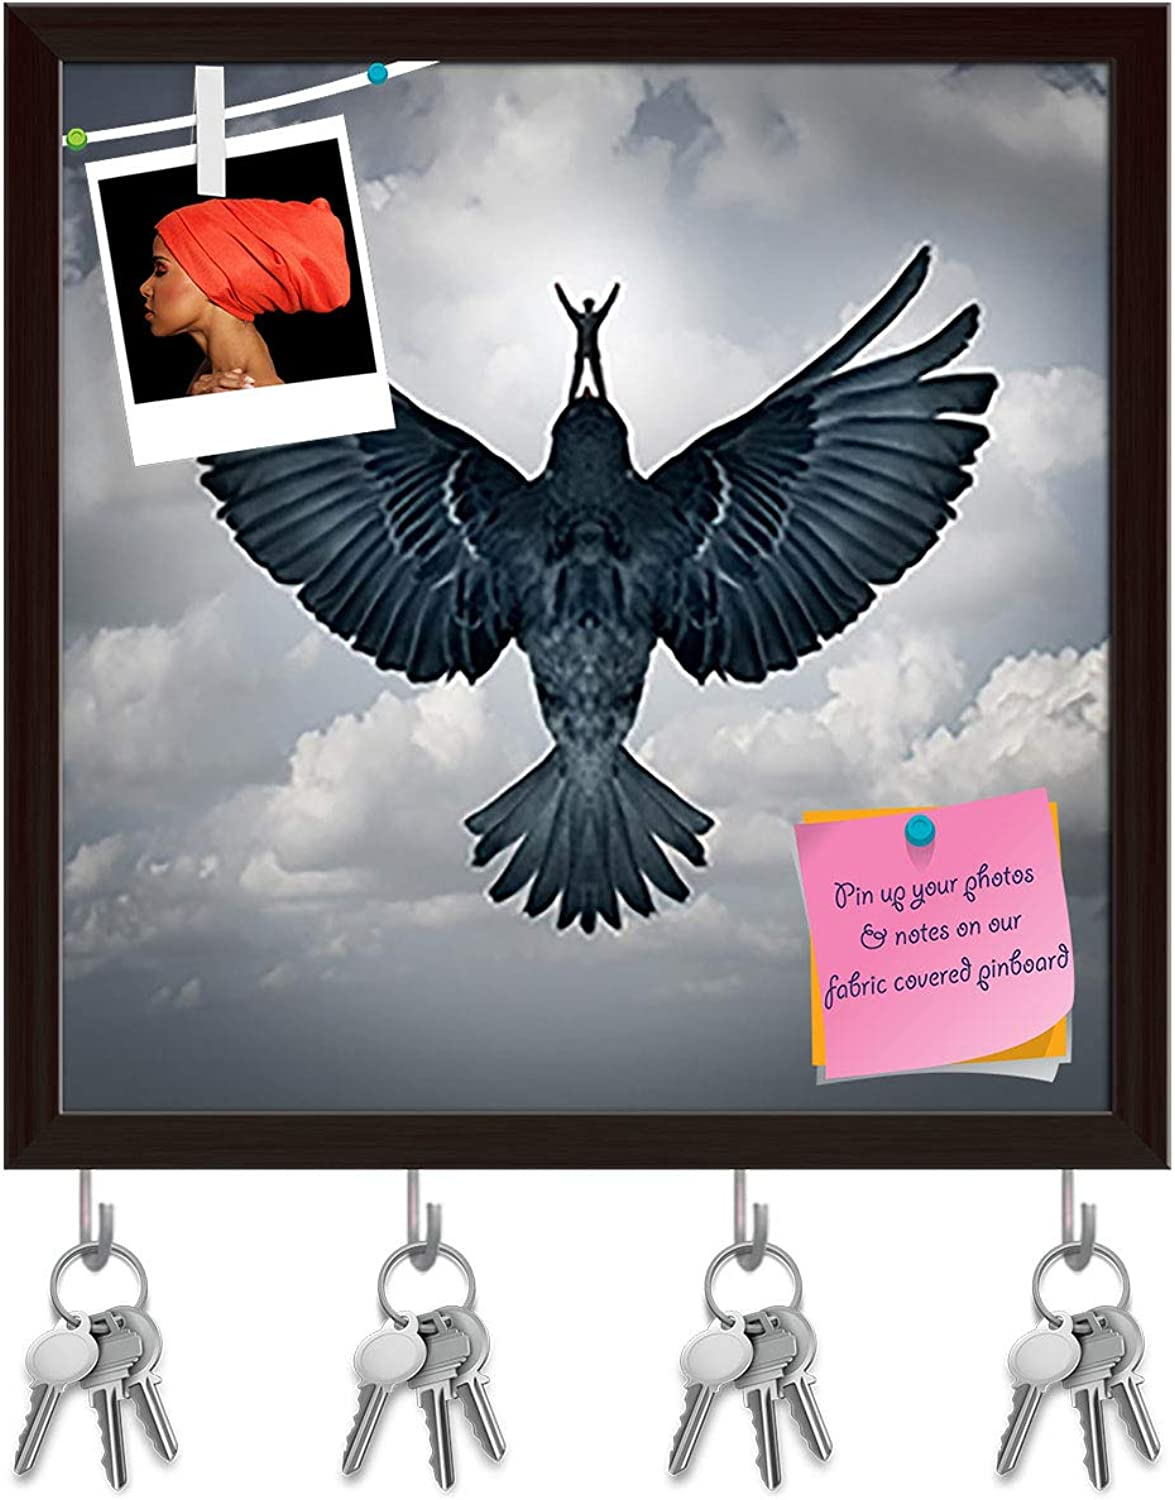 Artzfolio Man Riding an Open Wing Bird Key Holder Hooks   Notice Pin Board   Dark Brown Frame 20 X 20Inch